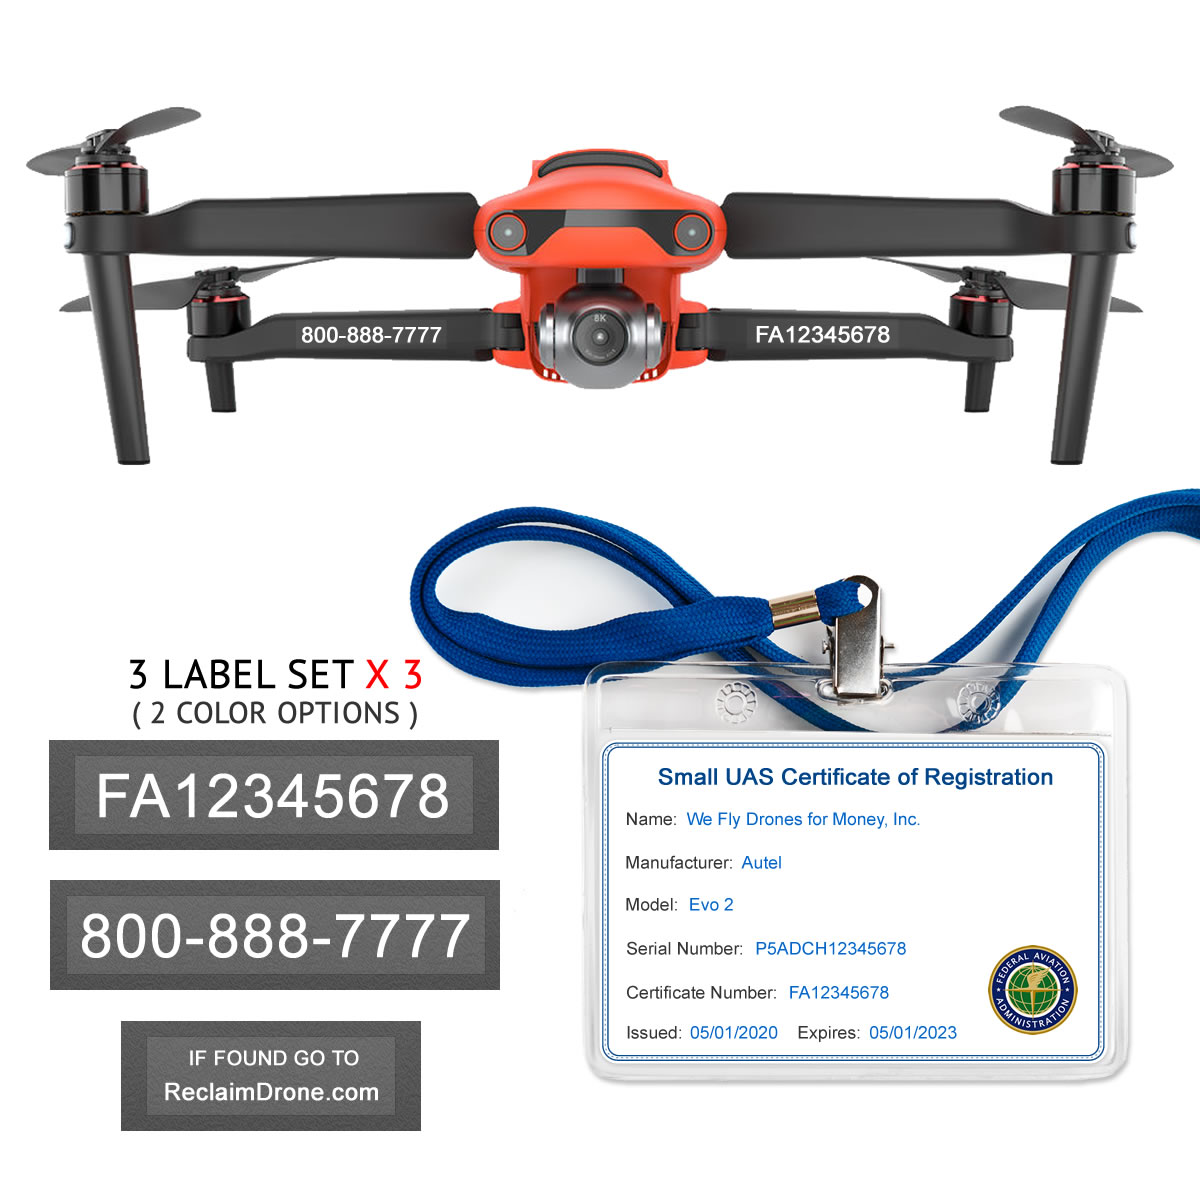 Autel Evo 2 – FAA Registration Commercial Pilot Bundle – FAA Labels, ID Card, Lanyard